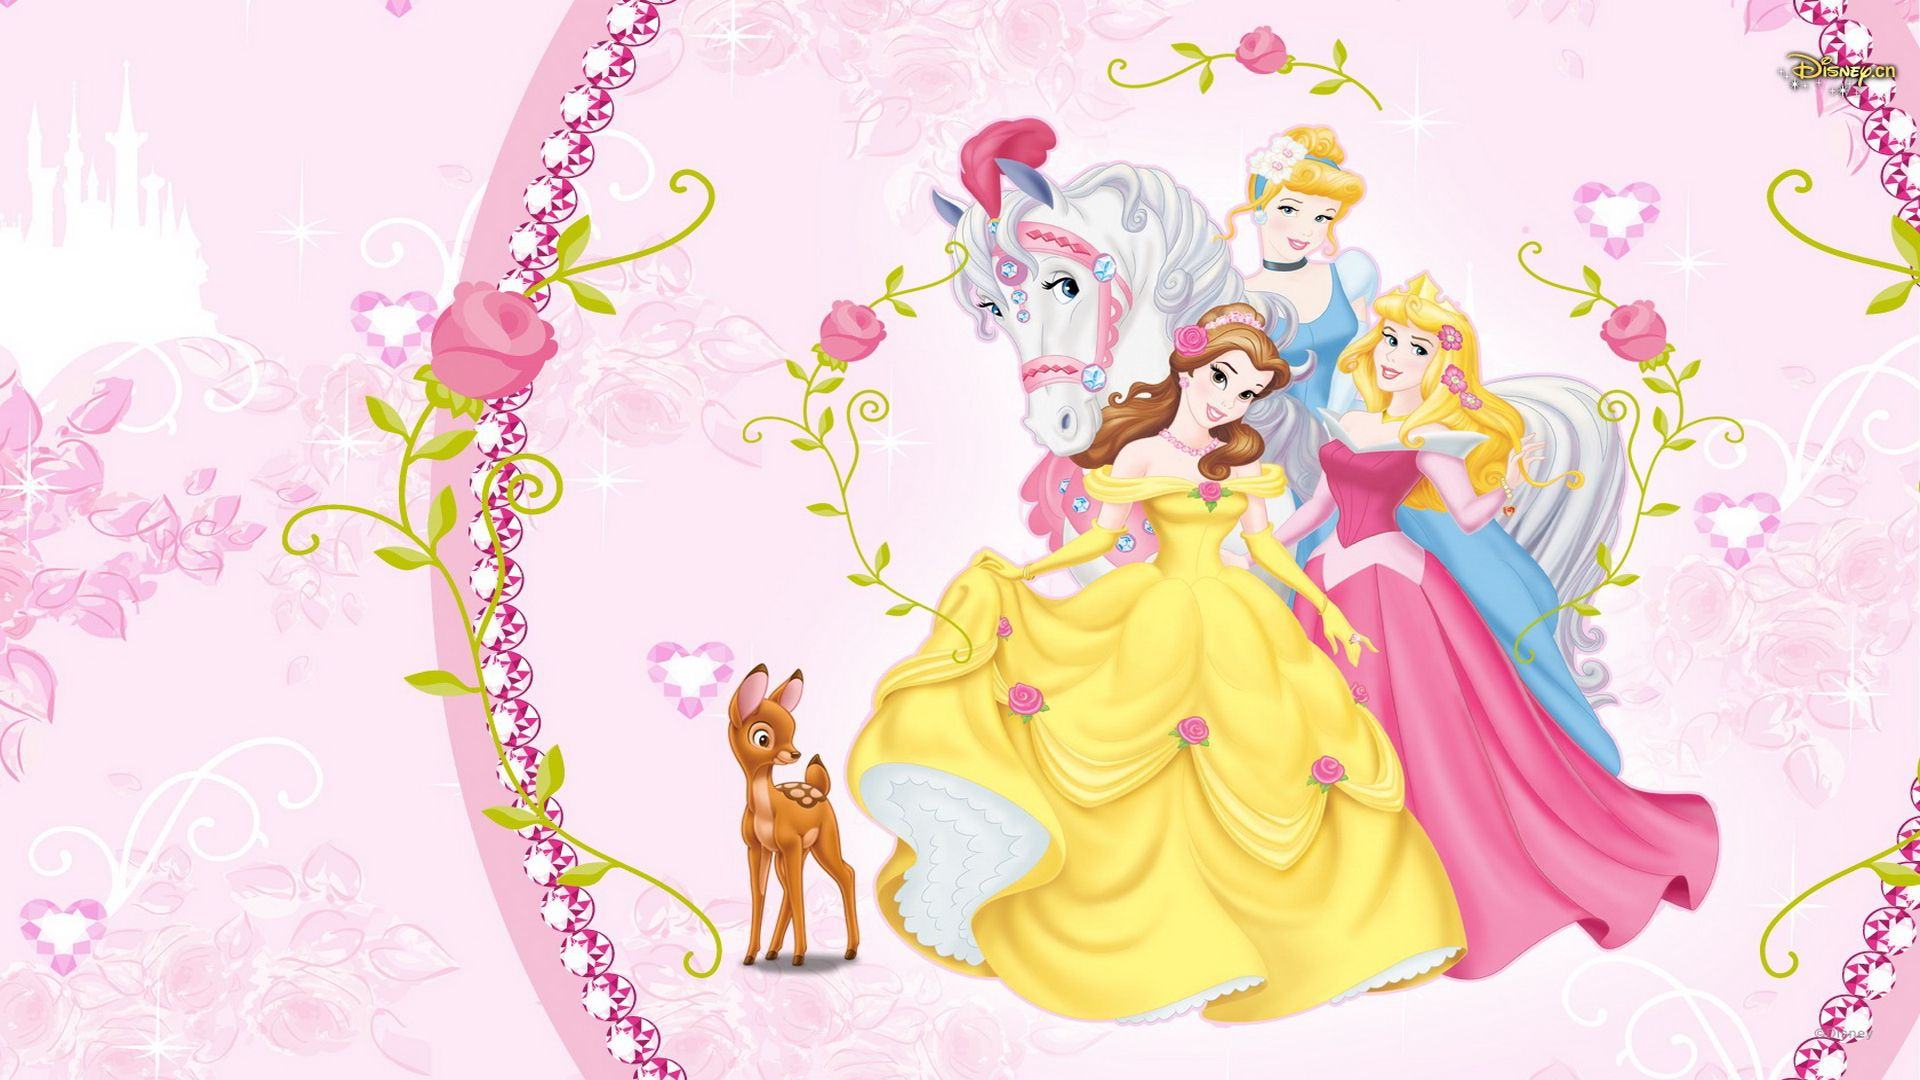 Princess Wallpapers Get Free Top Quality Princess Wallpapers For